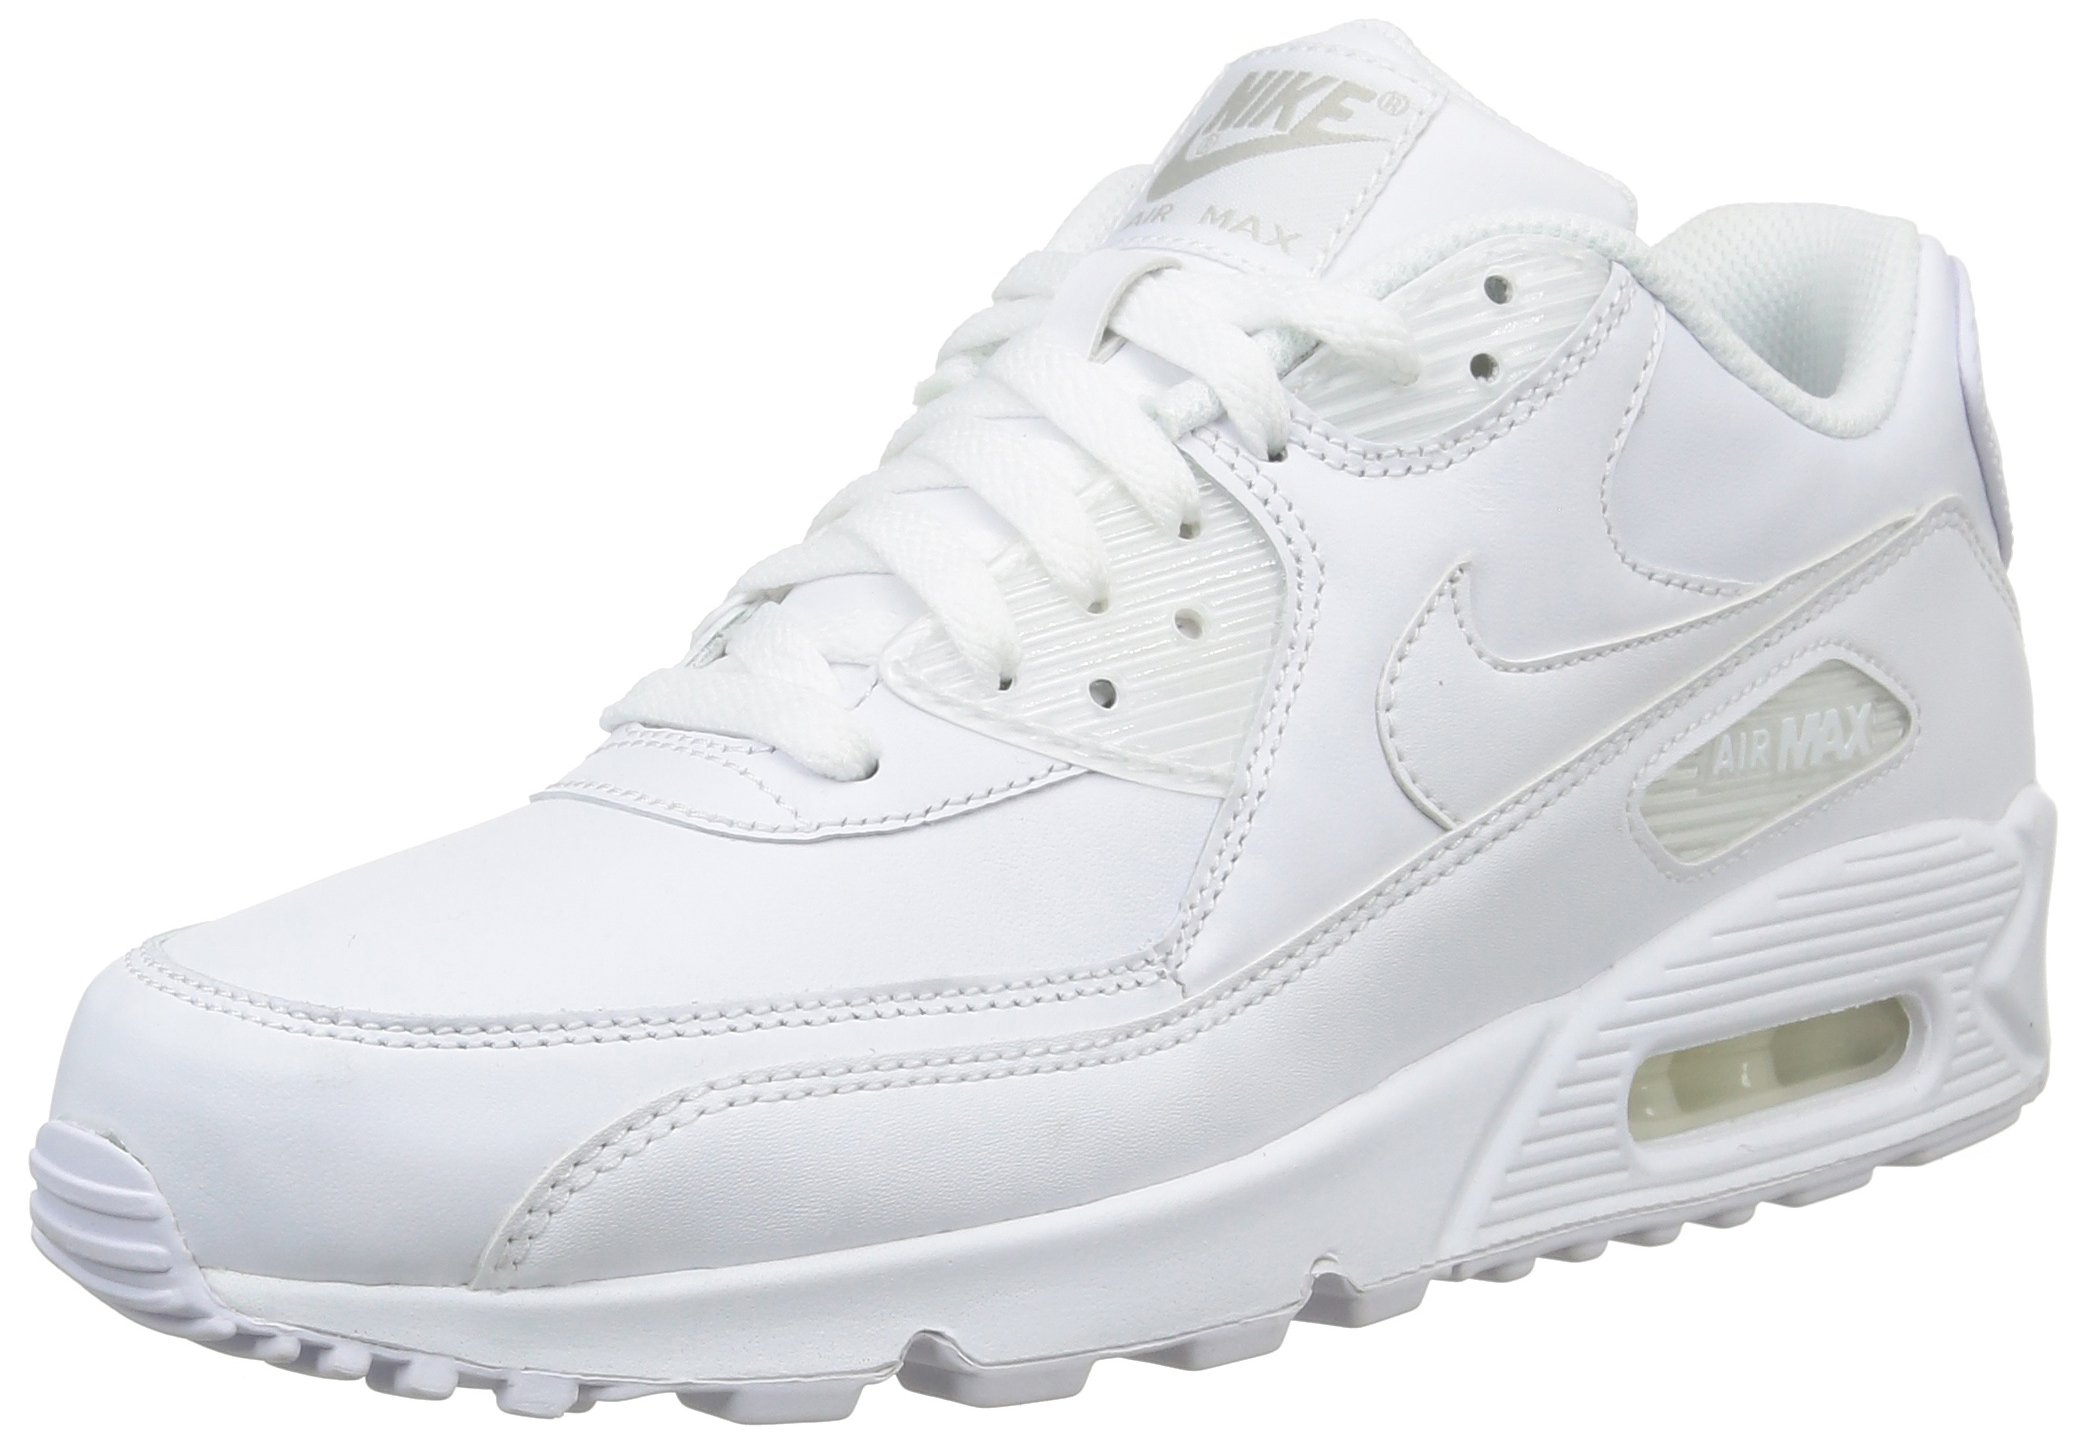 Nike Men's Air Max 90 Leather, White/White, 12.5 M US